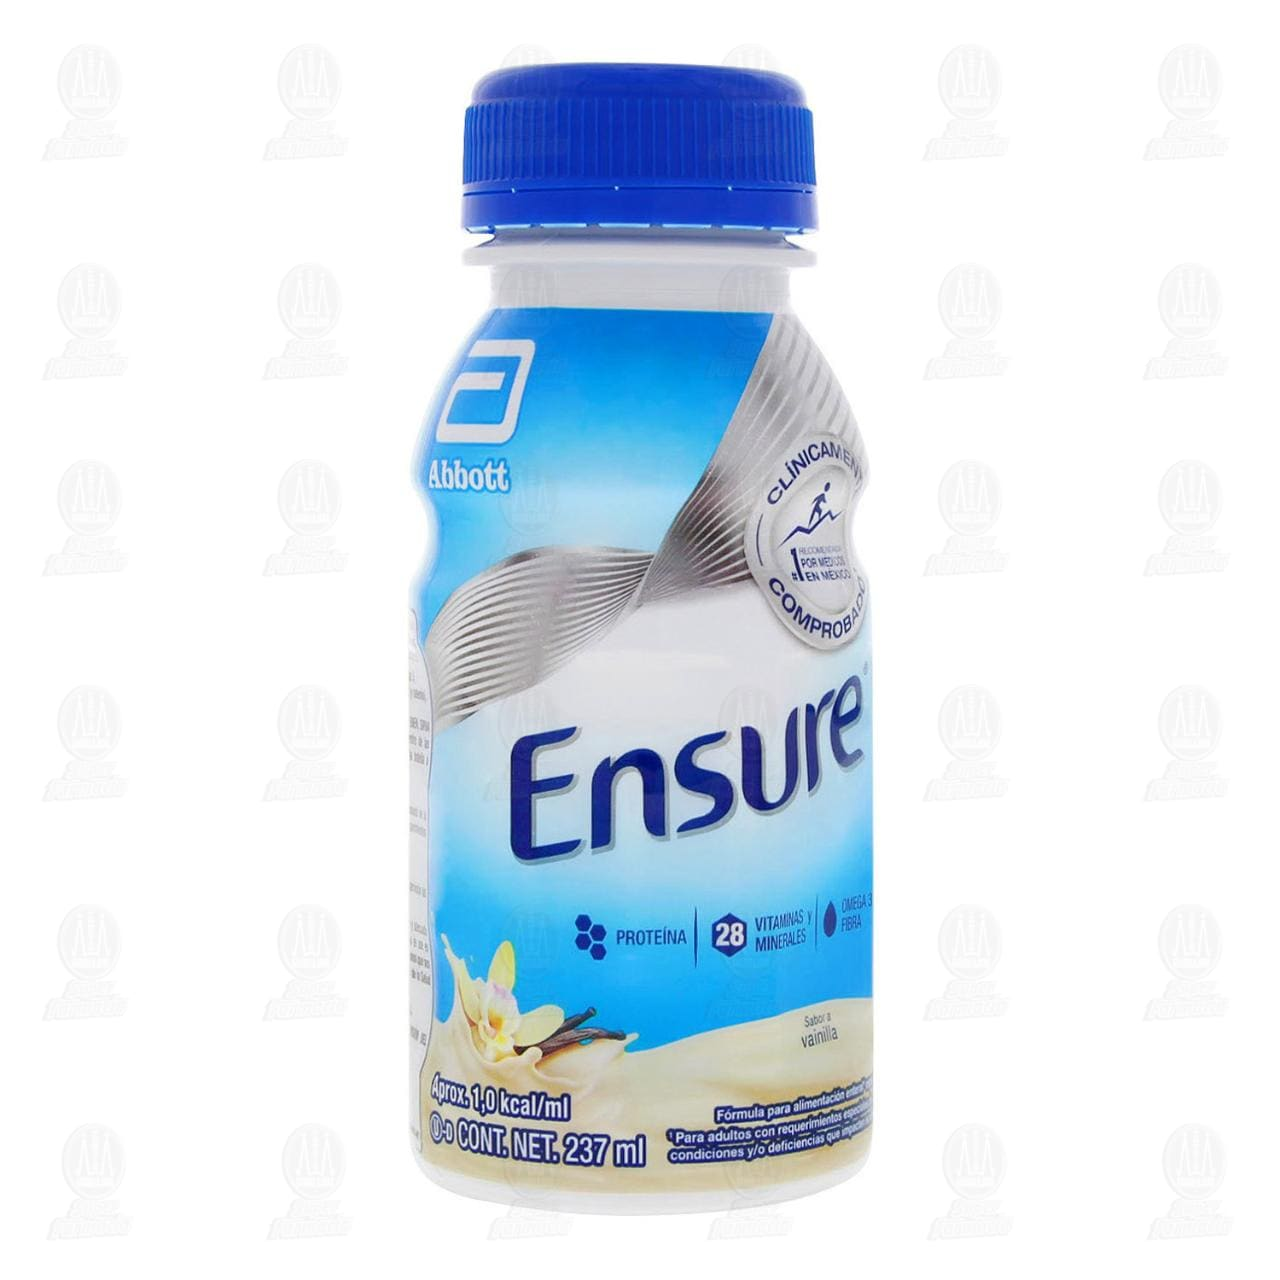 Ensure Regular Vainilla Botella 237ml